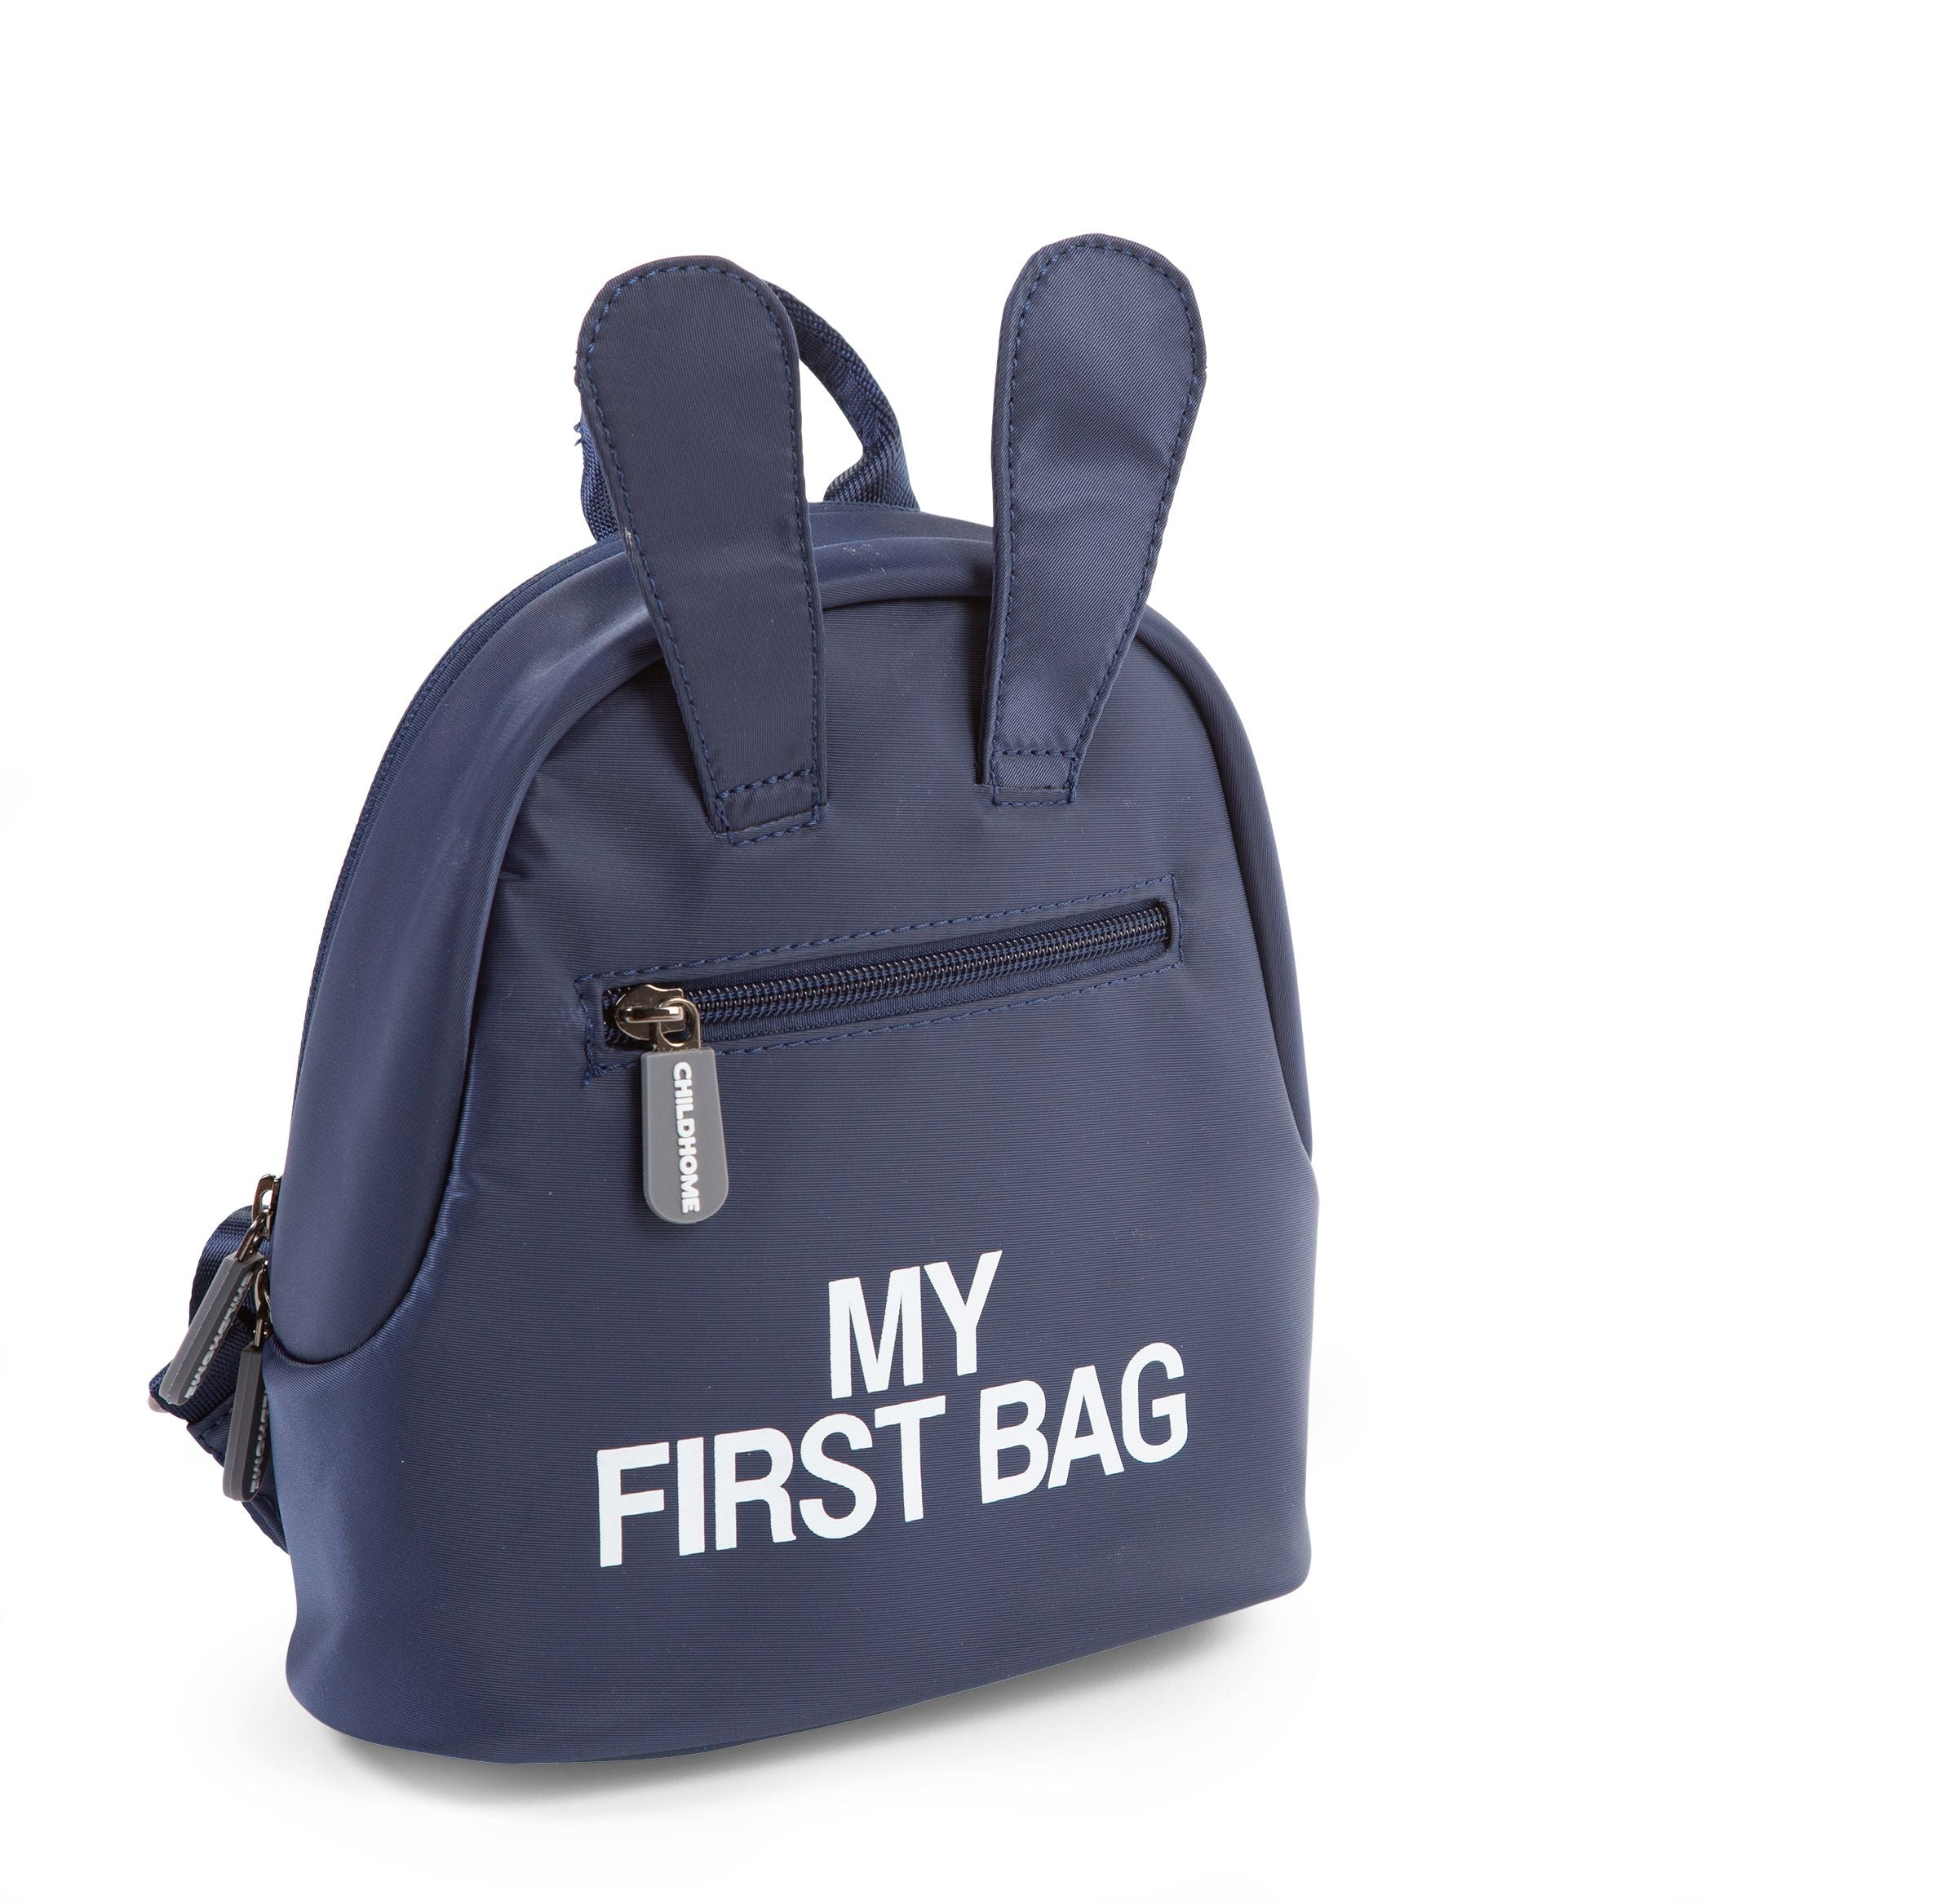 My First Bag Children's Backpack - Navy - MyLullaby